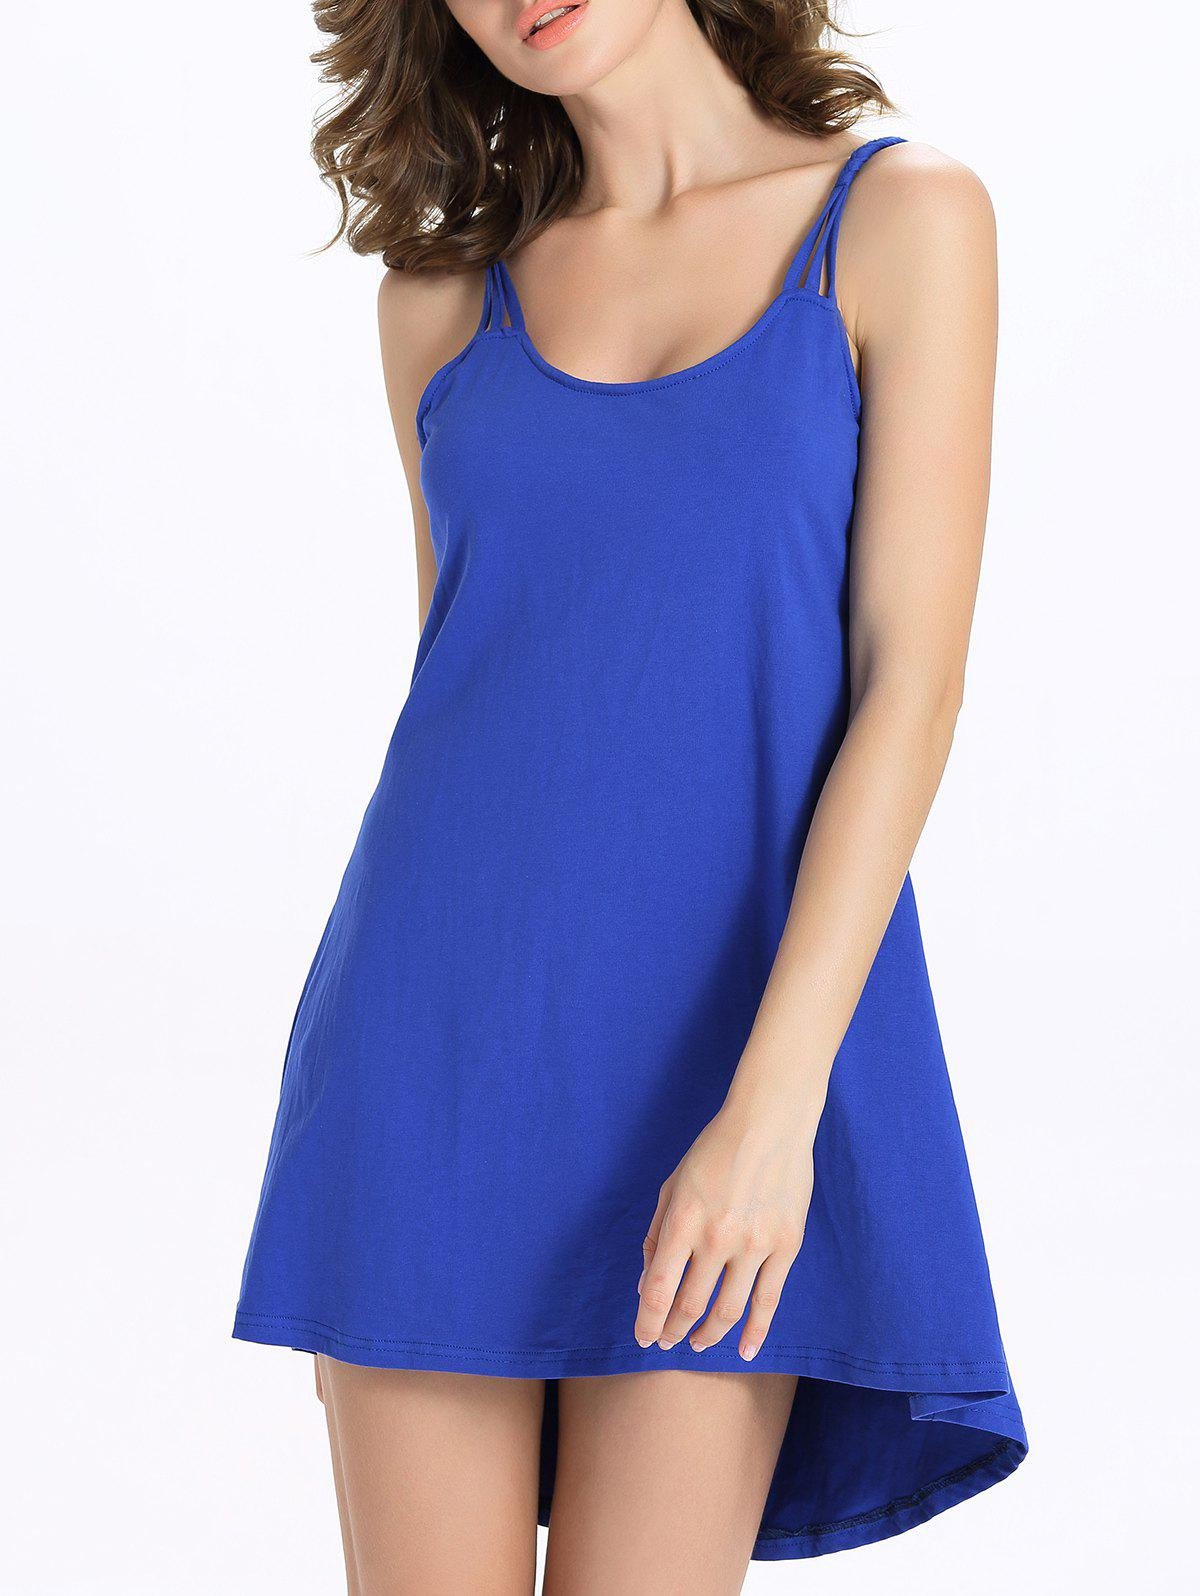 Stylish Candy Color Scoop Neck Tank Dress For Women - SAPPHIRE BLUE 2XL